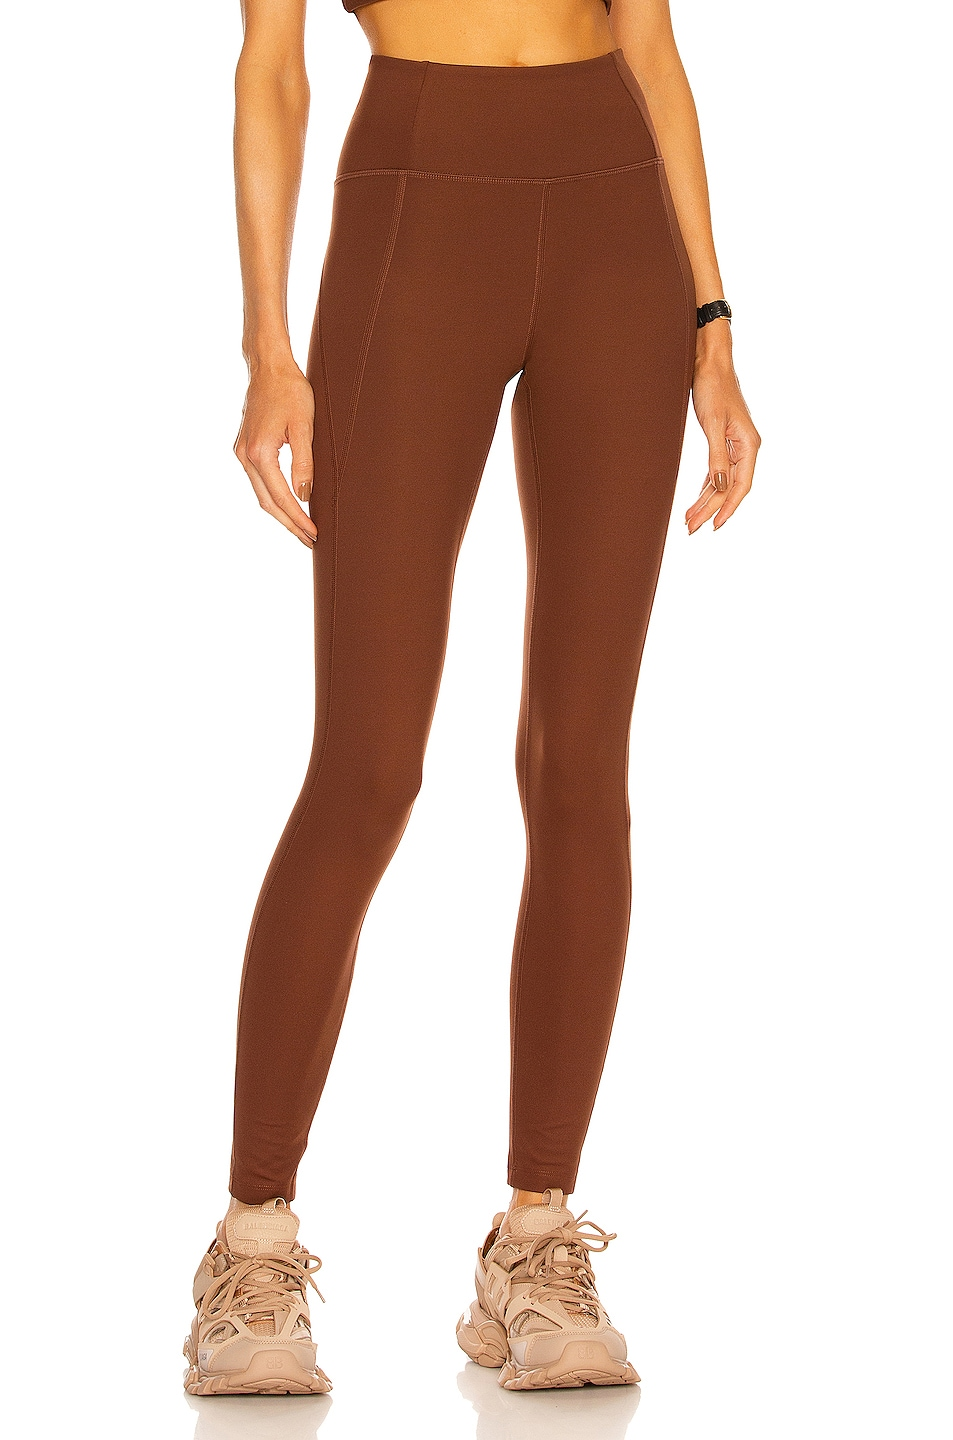 Image 1 of Girlfriend Collective High Rise Compressive Legging in Earth